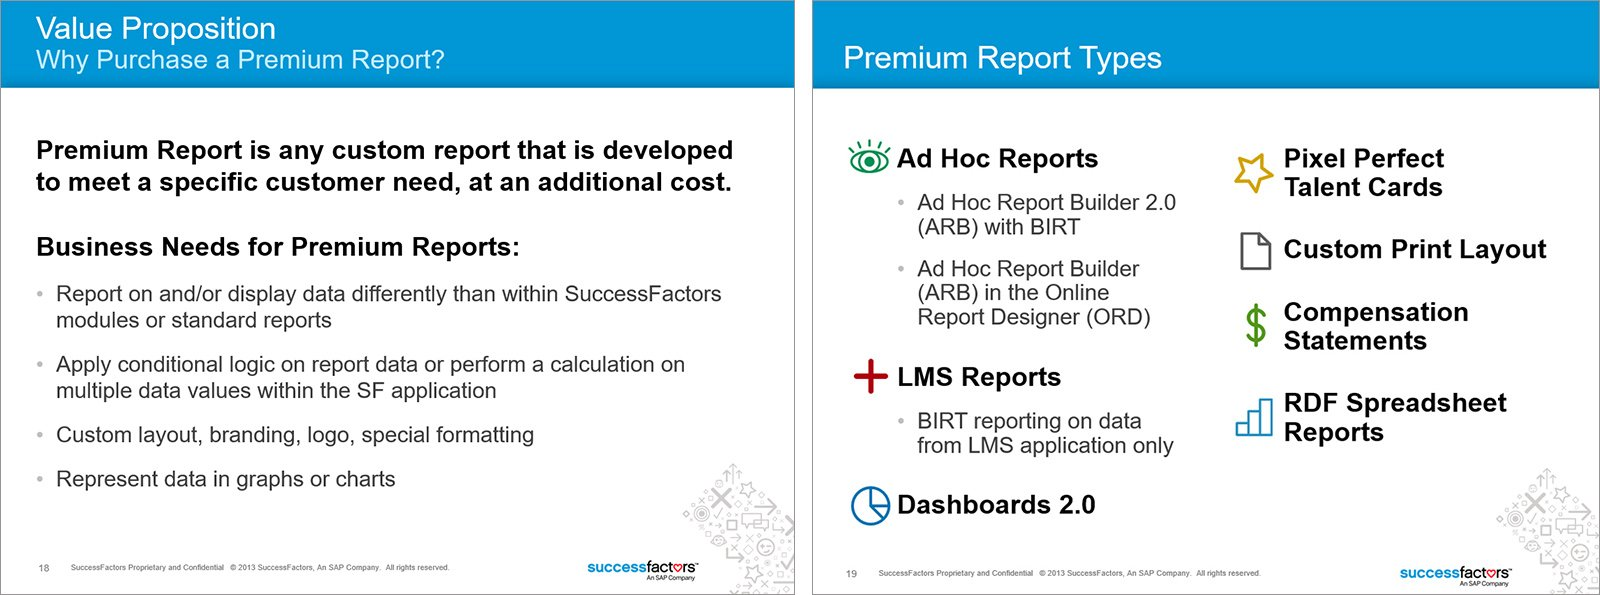 Value Proposition and Premium Report Types